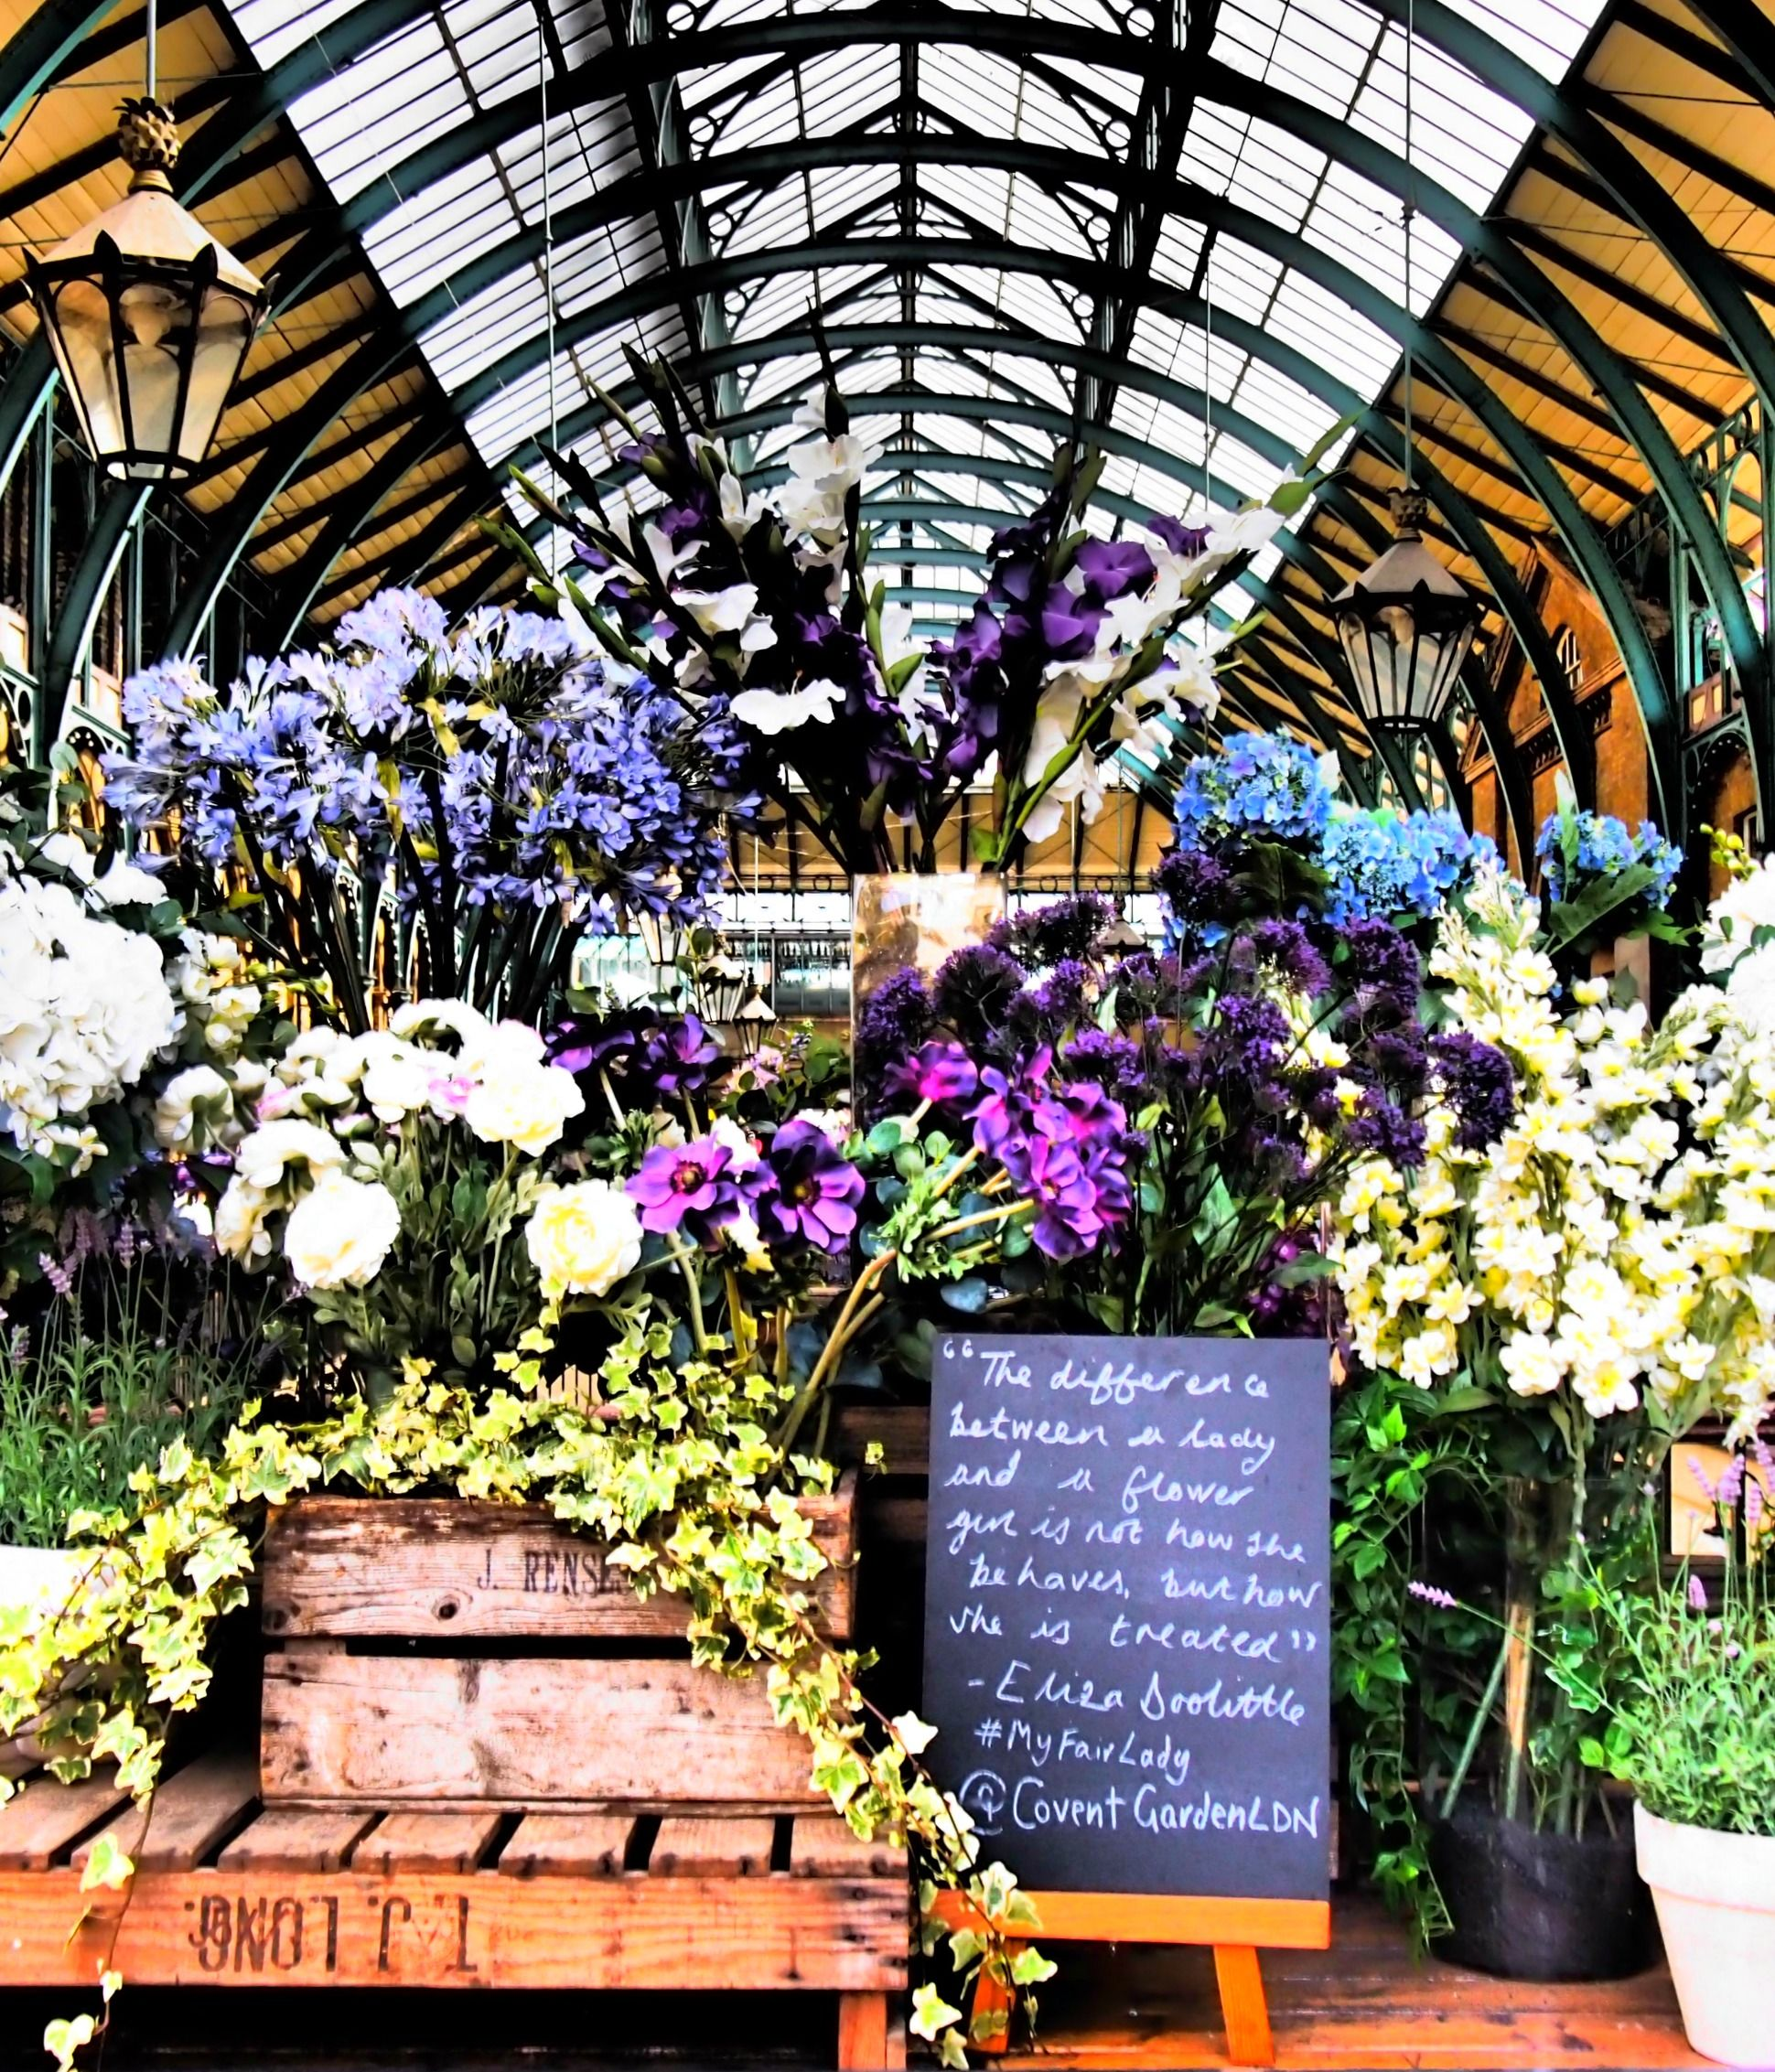 Flowers at Covent Garden Market. London. Read more about